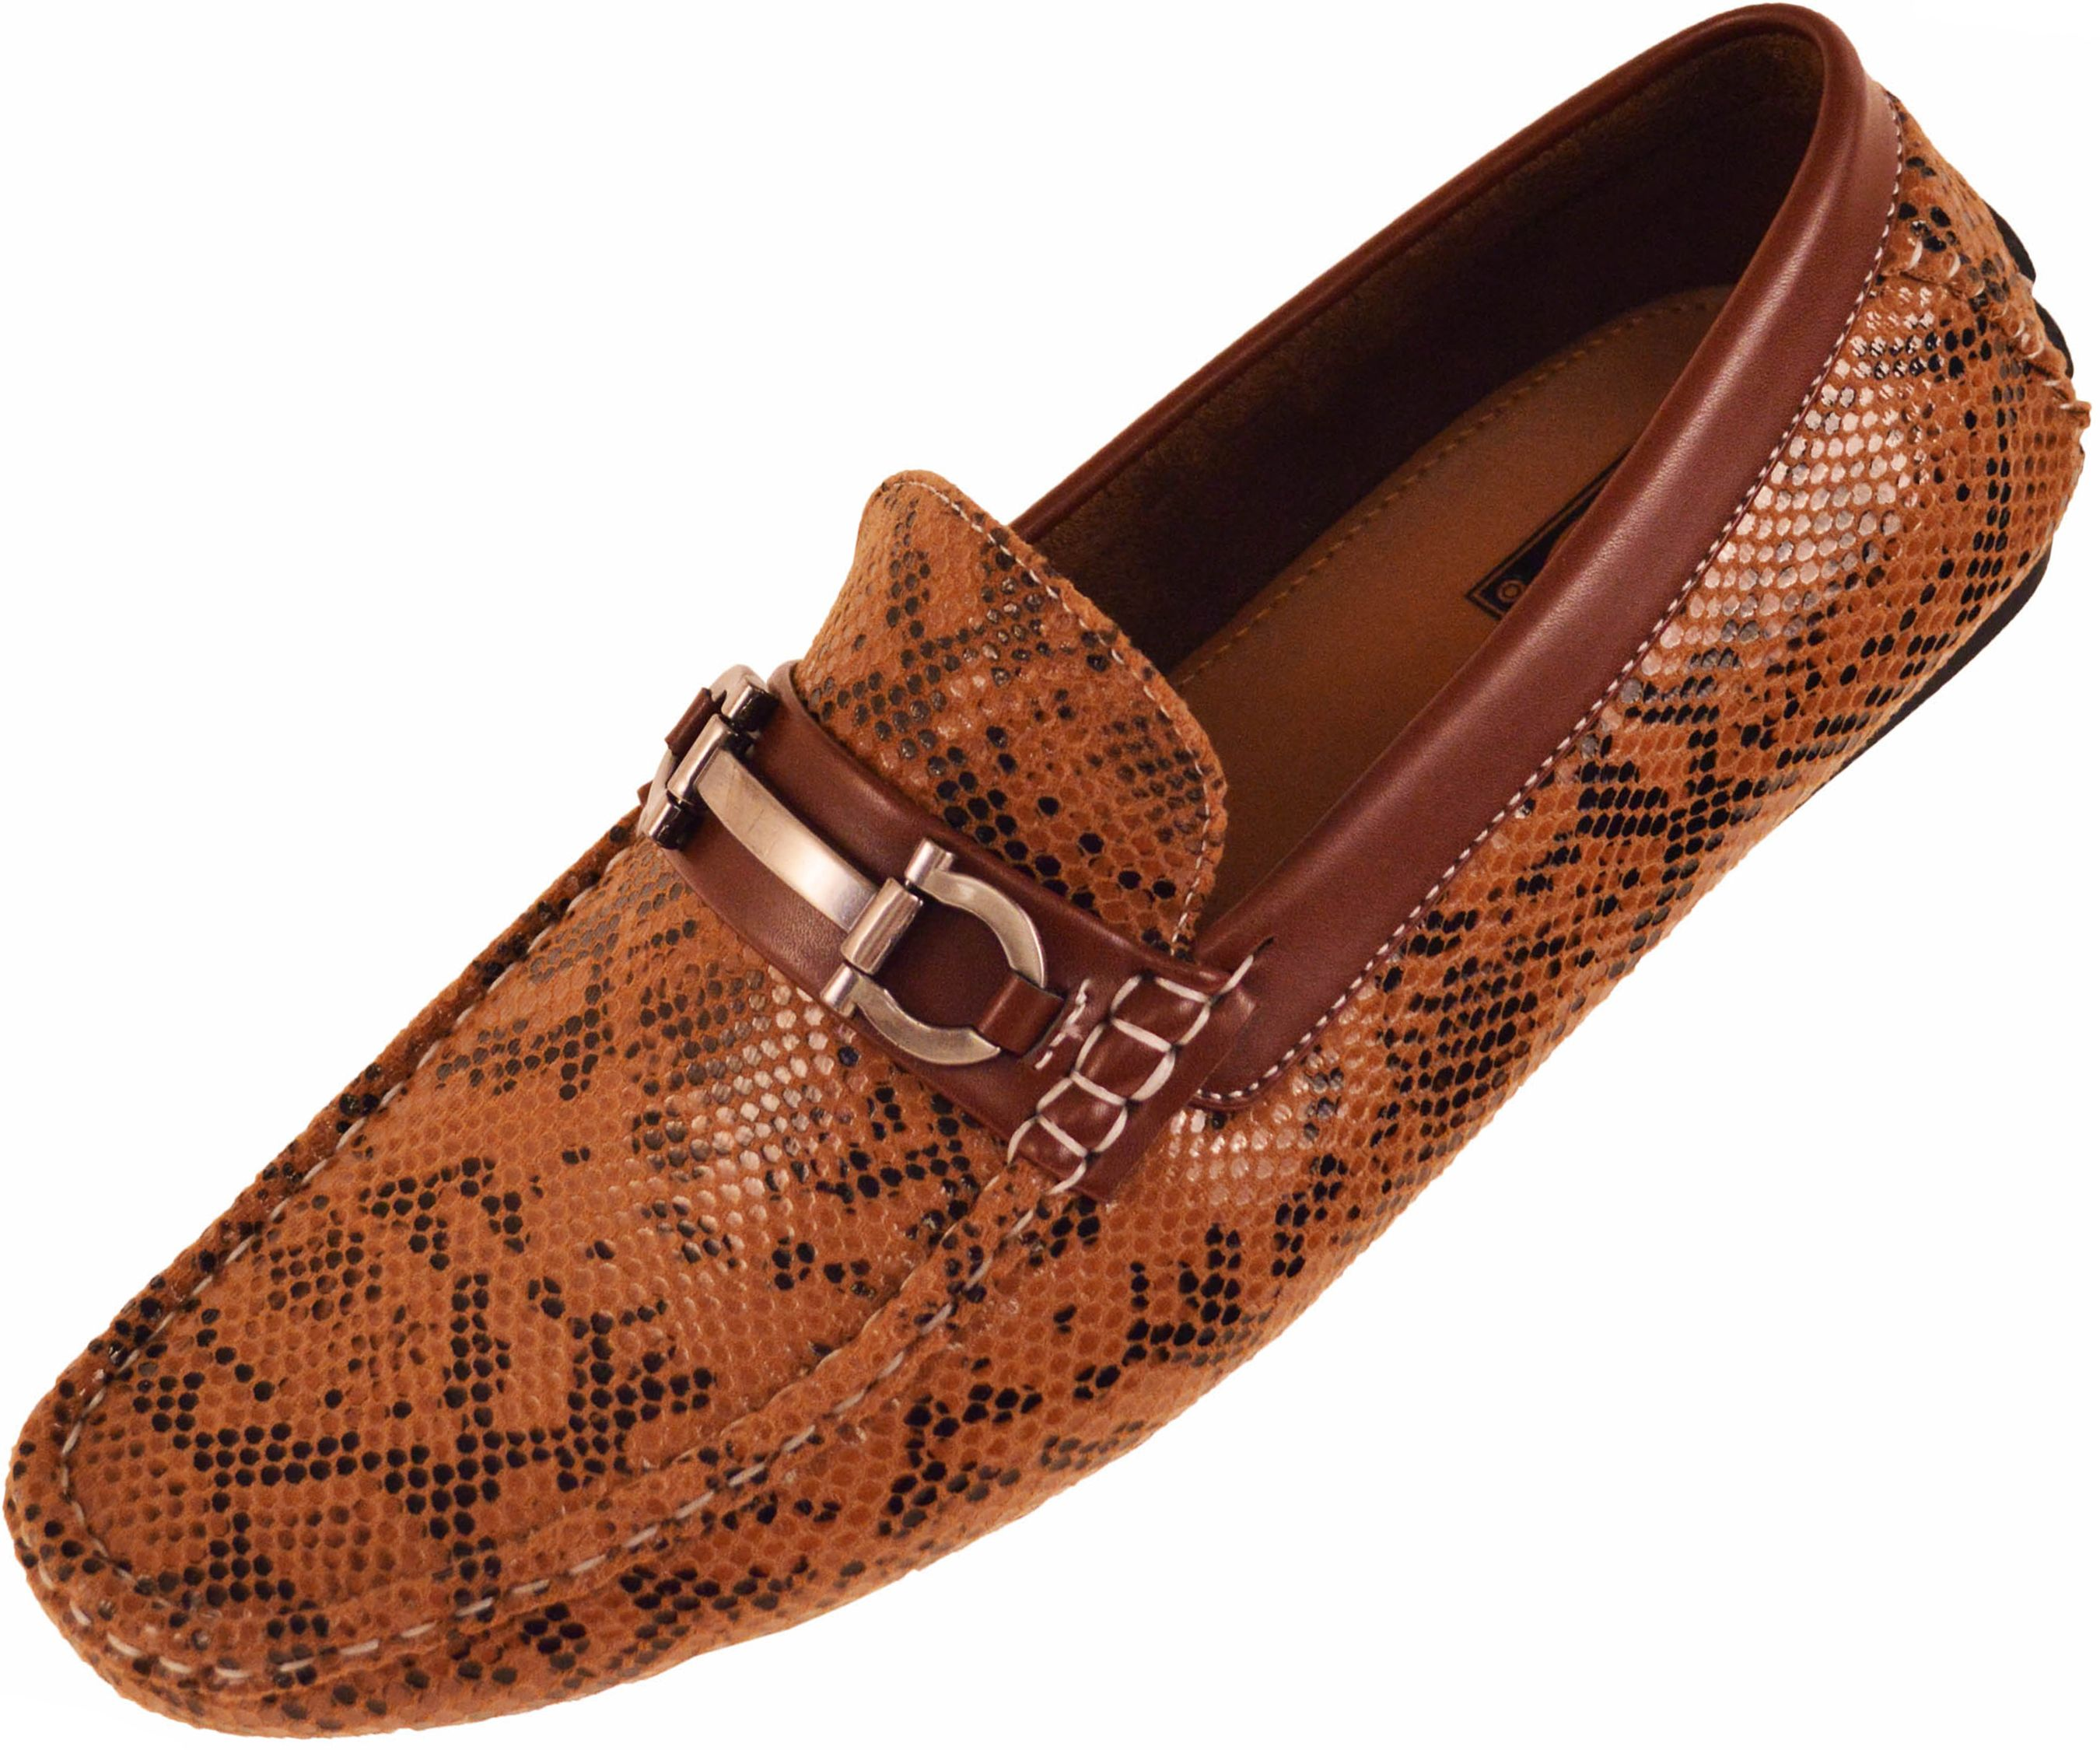 d4545d94335 Amali Mens Driving Moccasin Loafer in Brown Snake Skin Print with ...